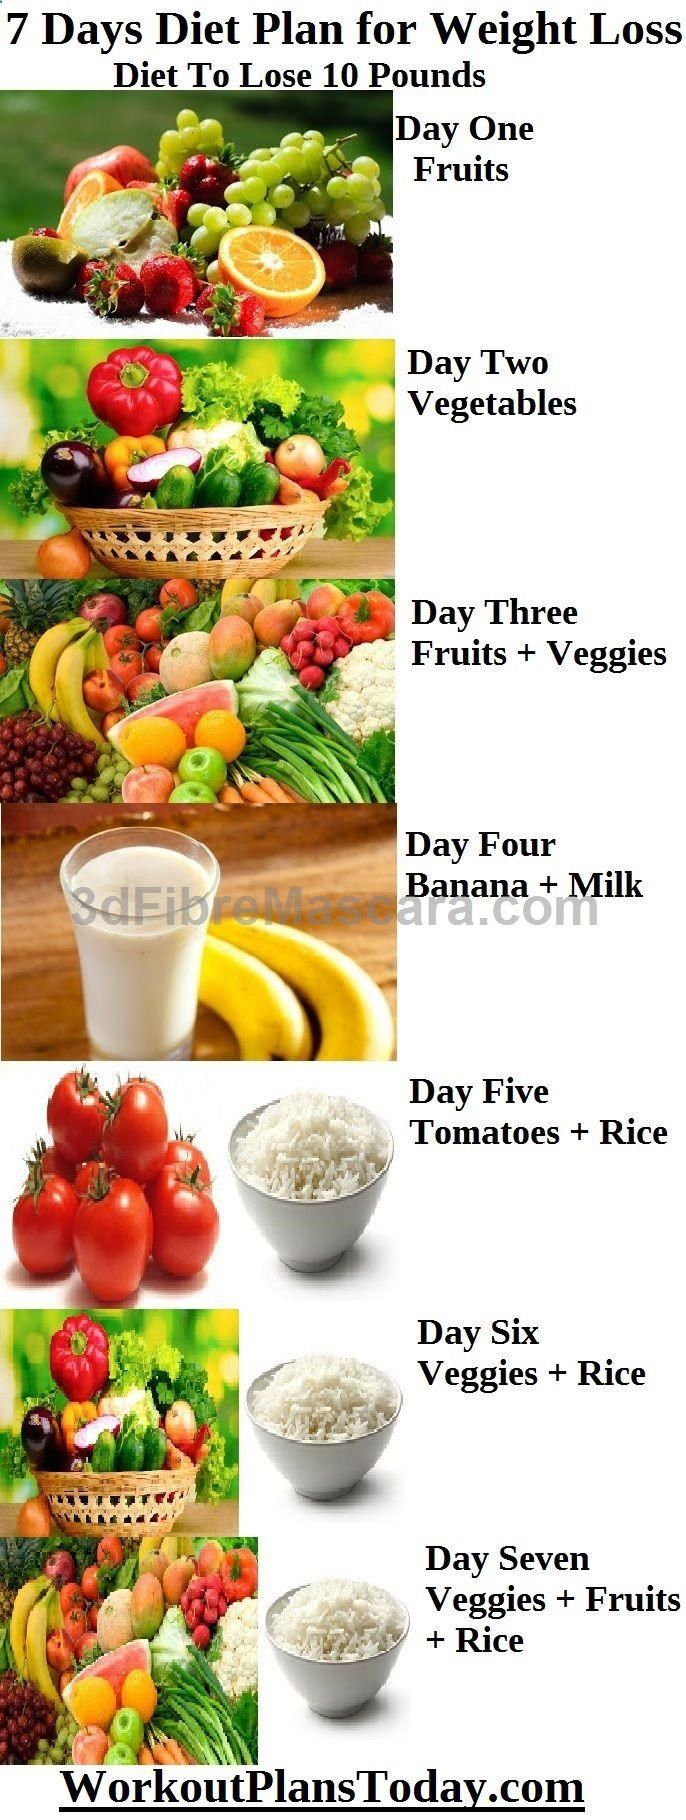 Best detox cleanse for weight loss reviews